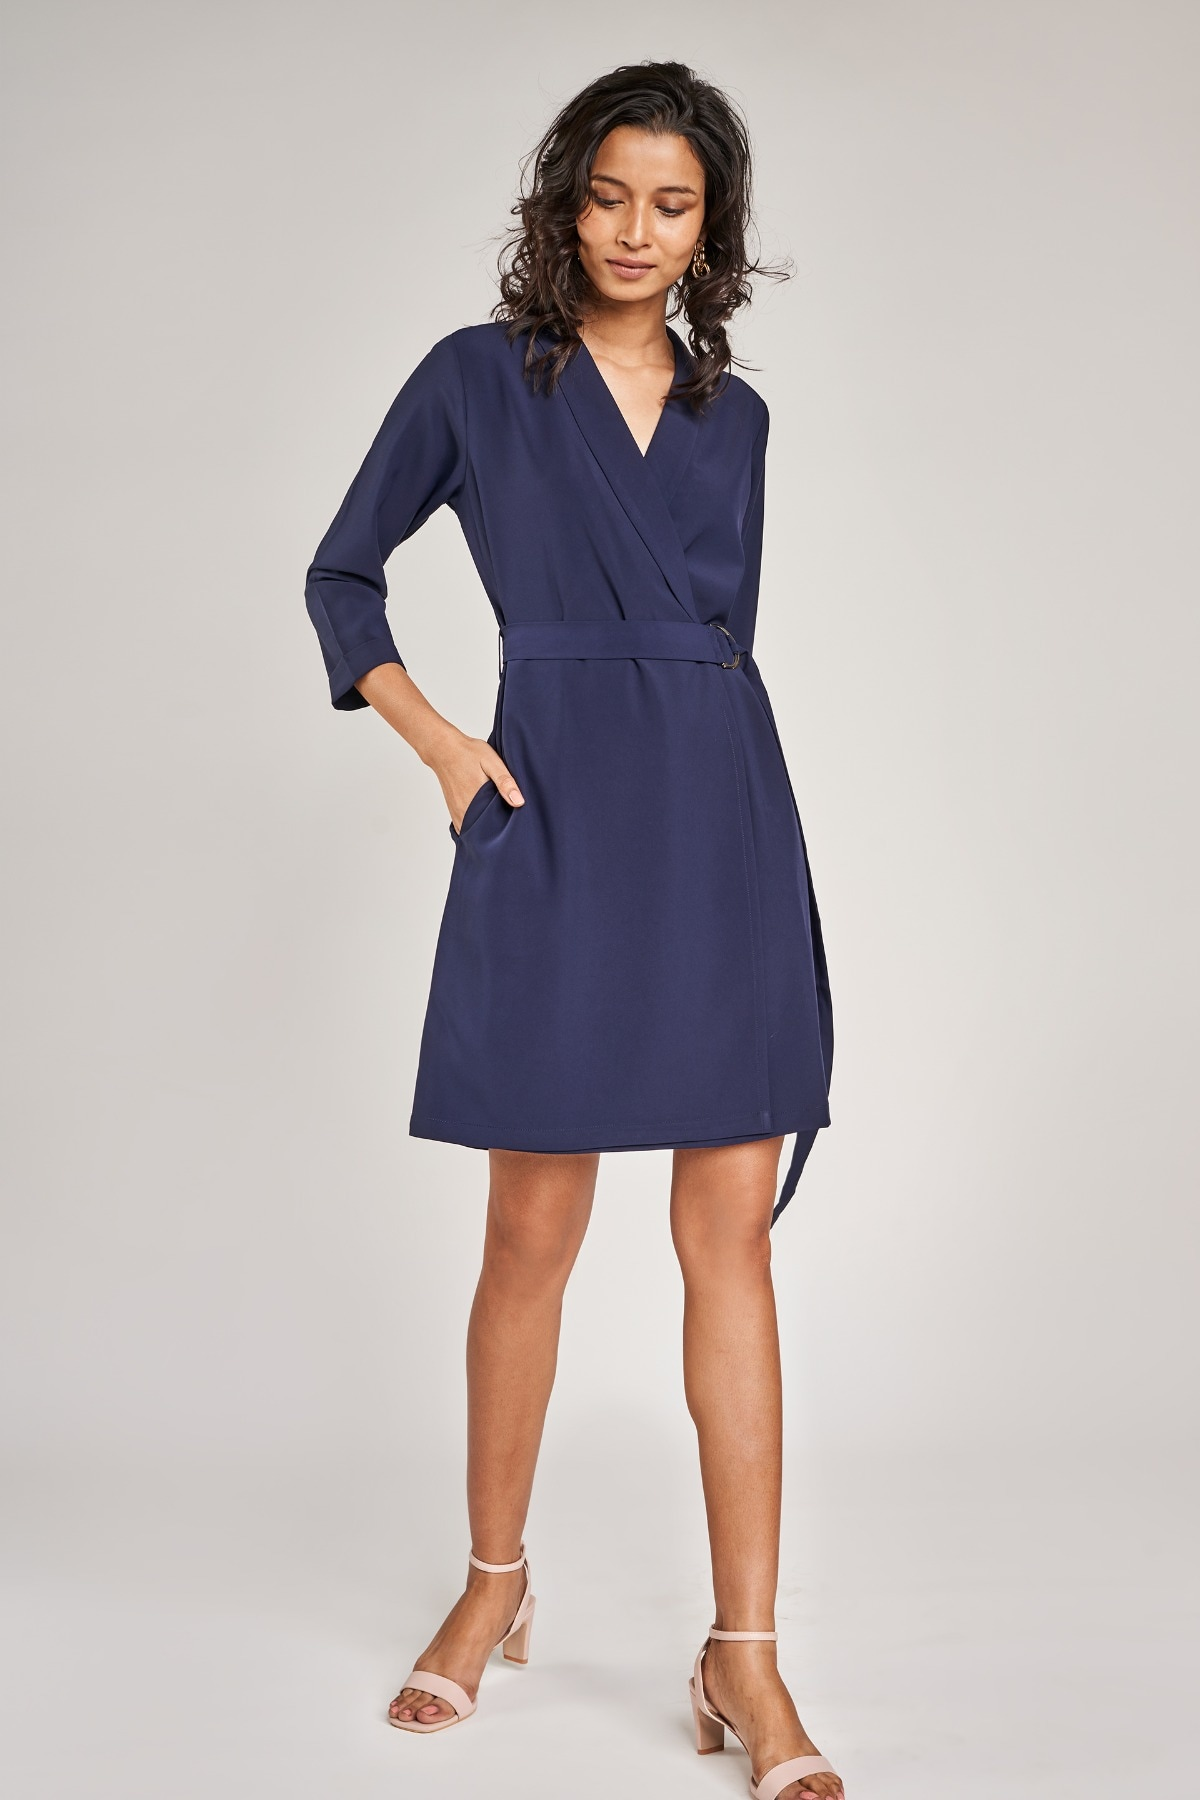 AND | Navy Blue Solid Shift Dress